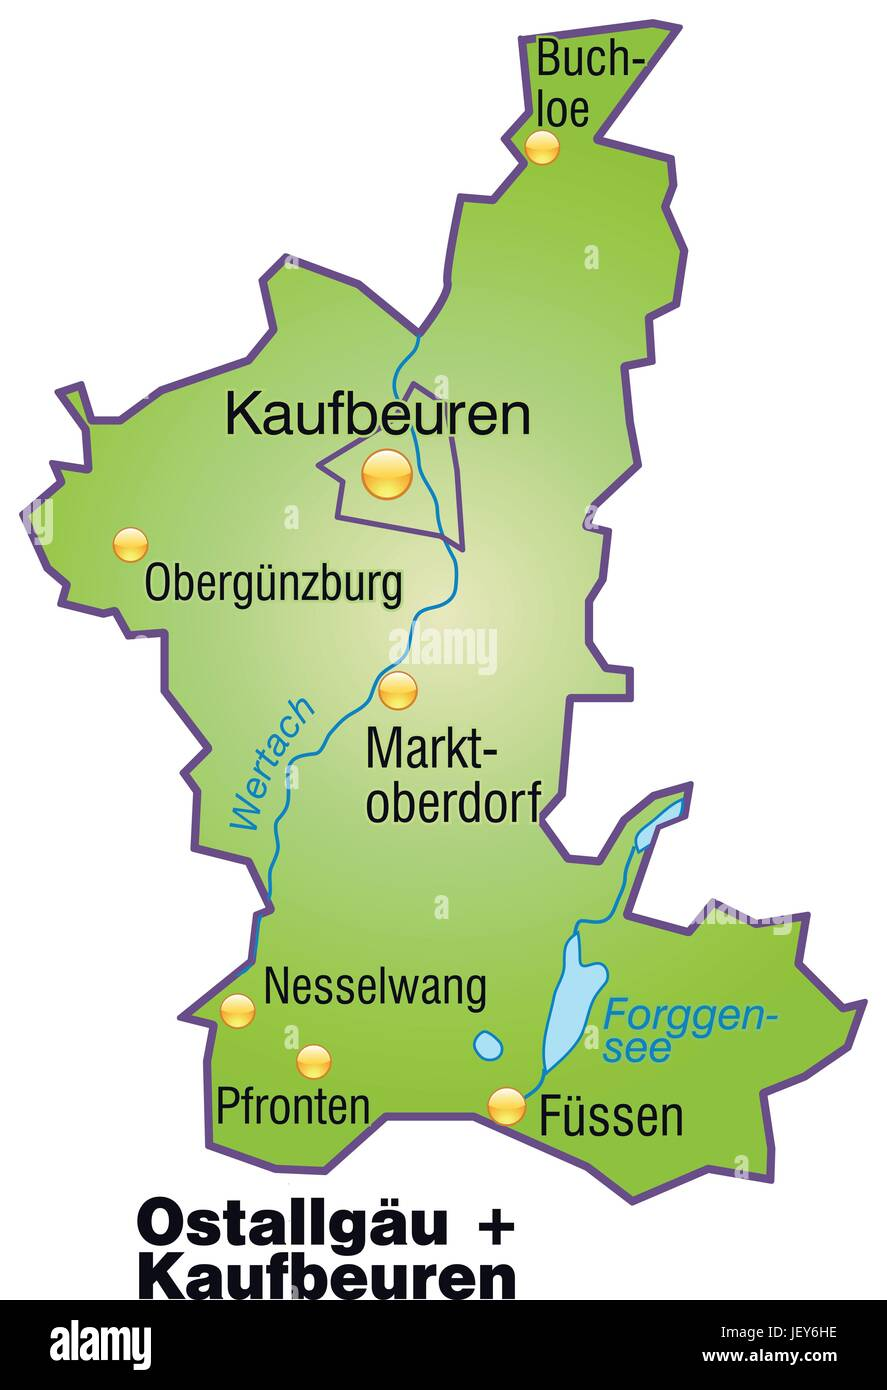 Map Of Ostallgaeu Kaufbeuren As An Overview Map In Green Stock